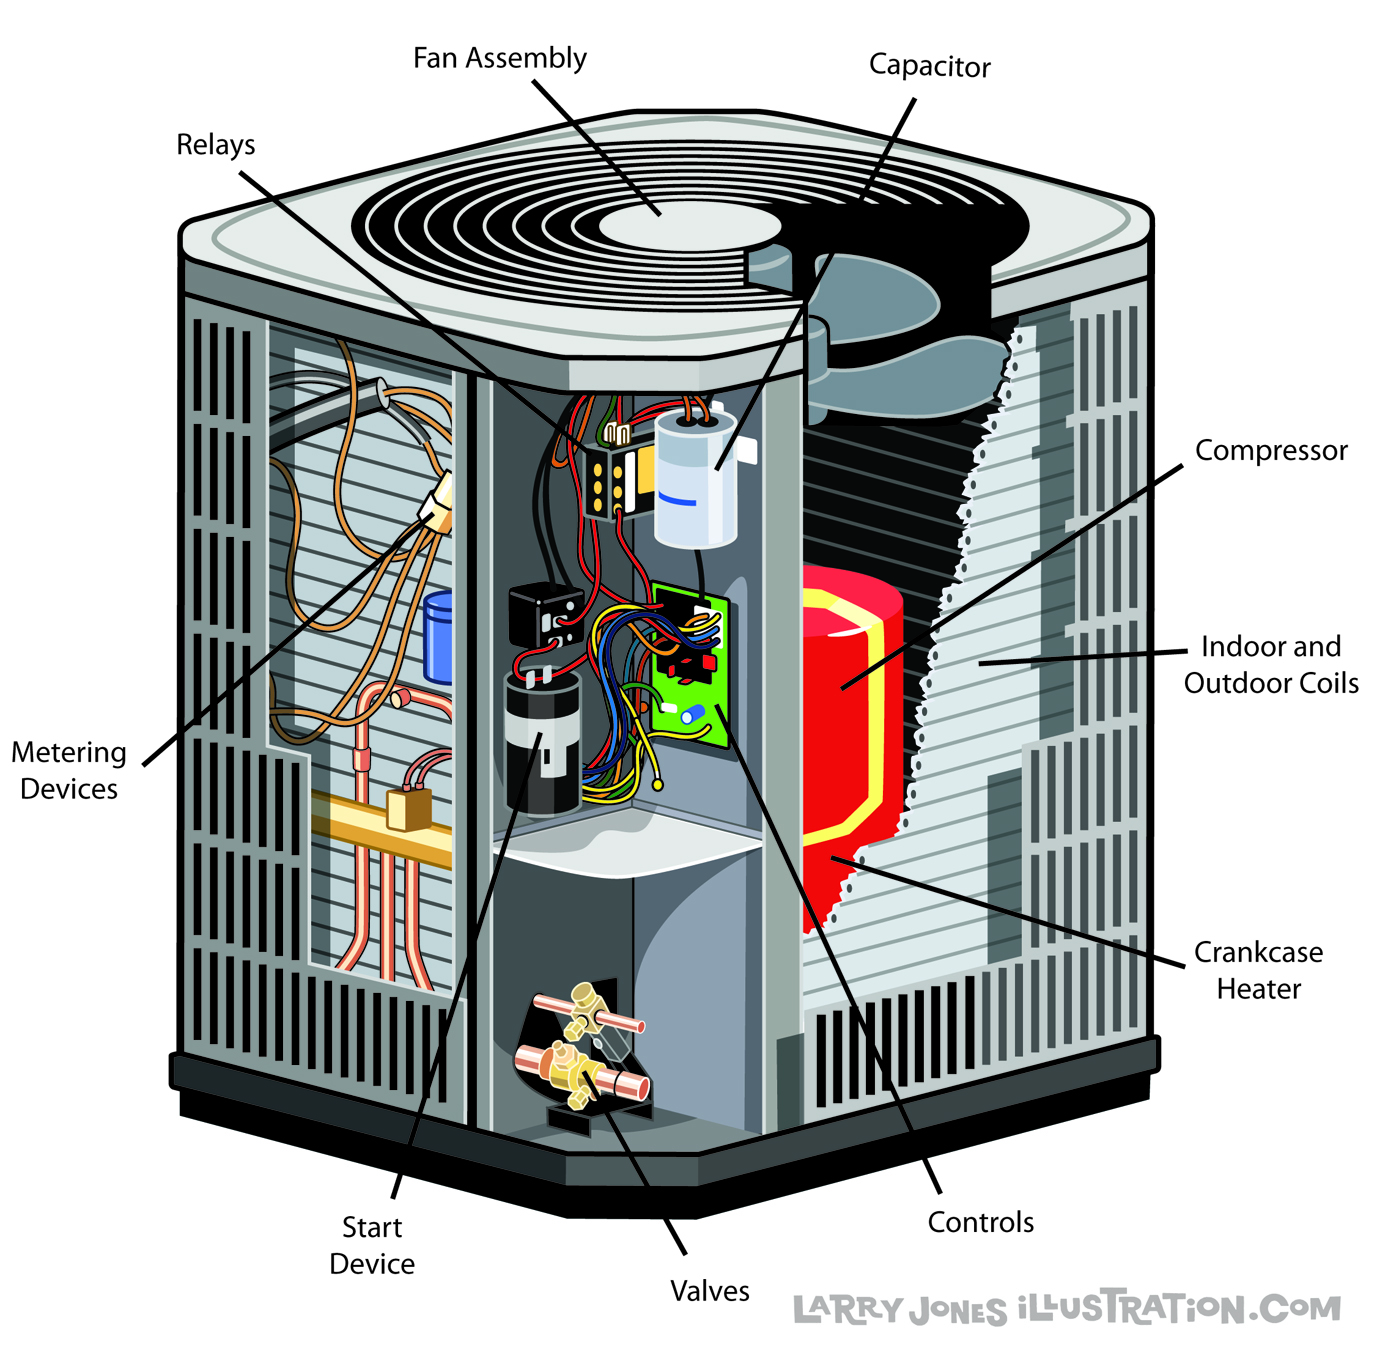 BGE-heatpump-illustration.jpg